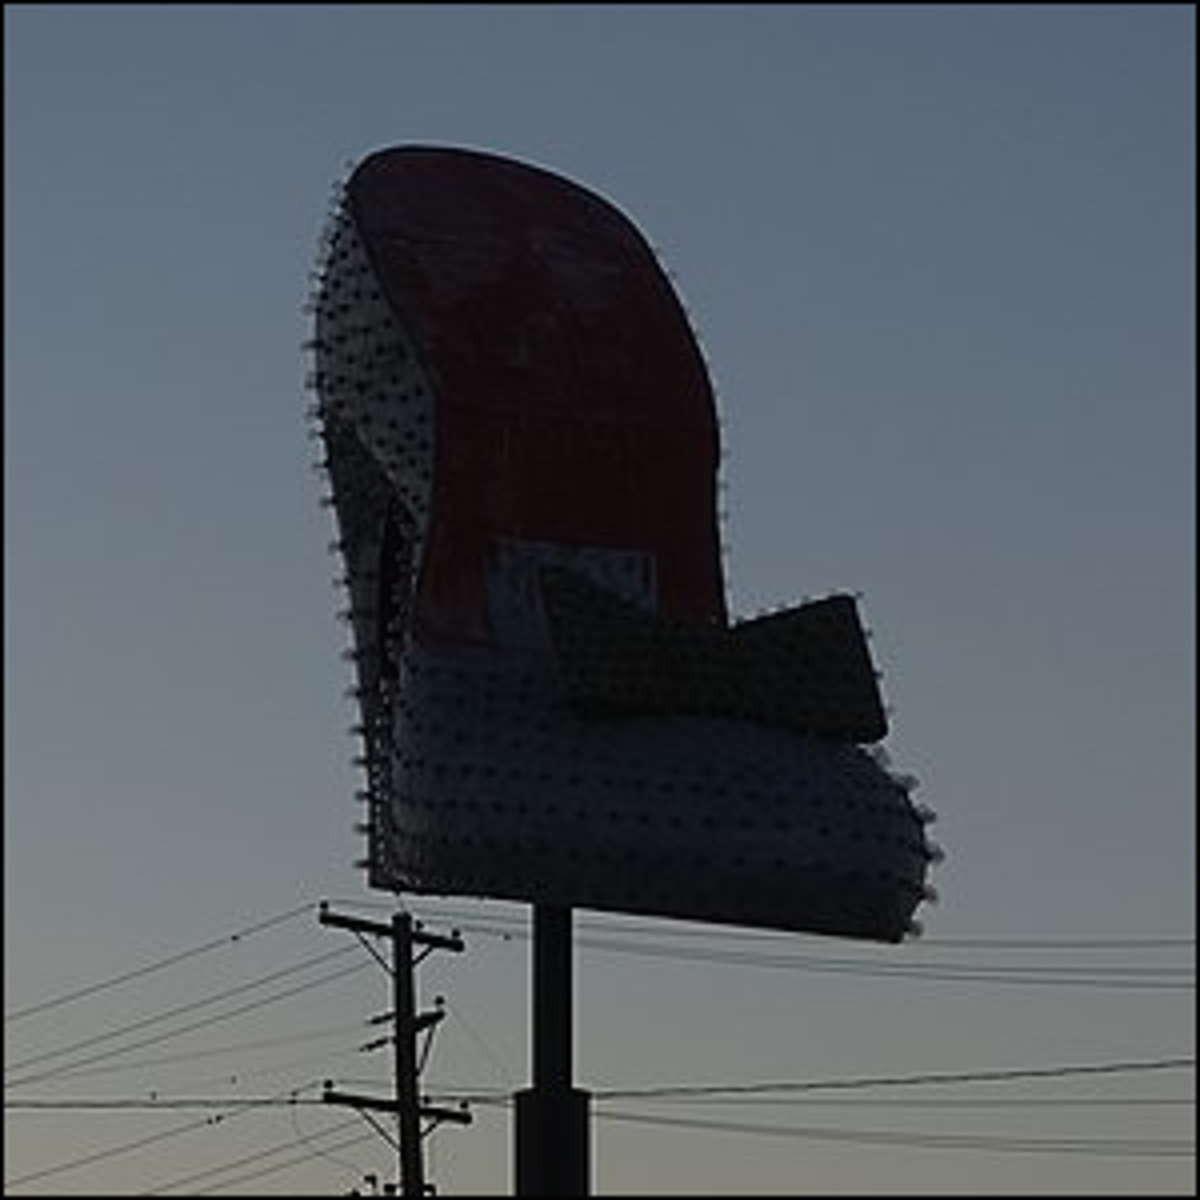 The Silver Slipper Casino's iconic sign now located at The Neon Museum in Las Vegas.